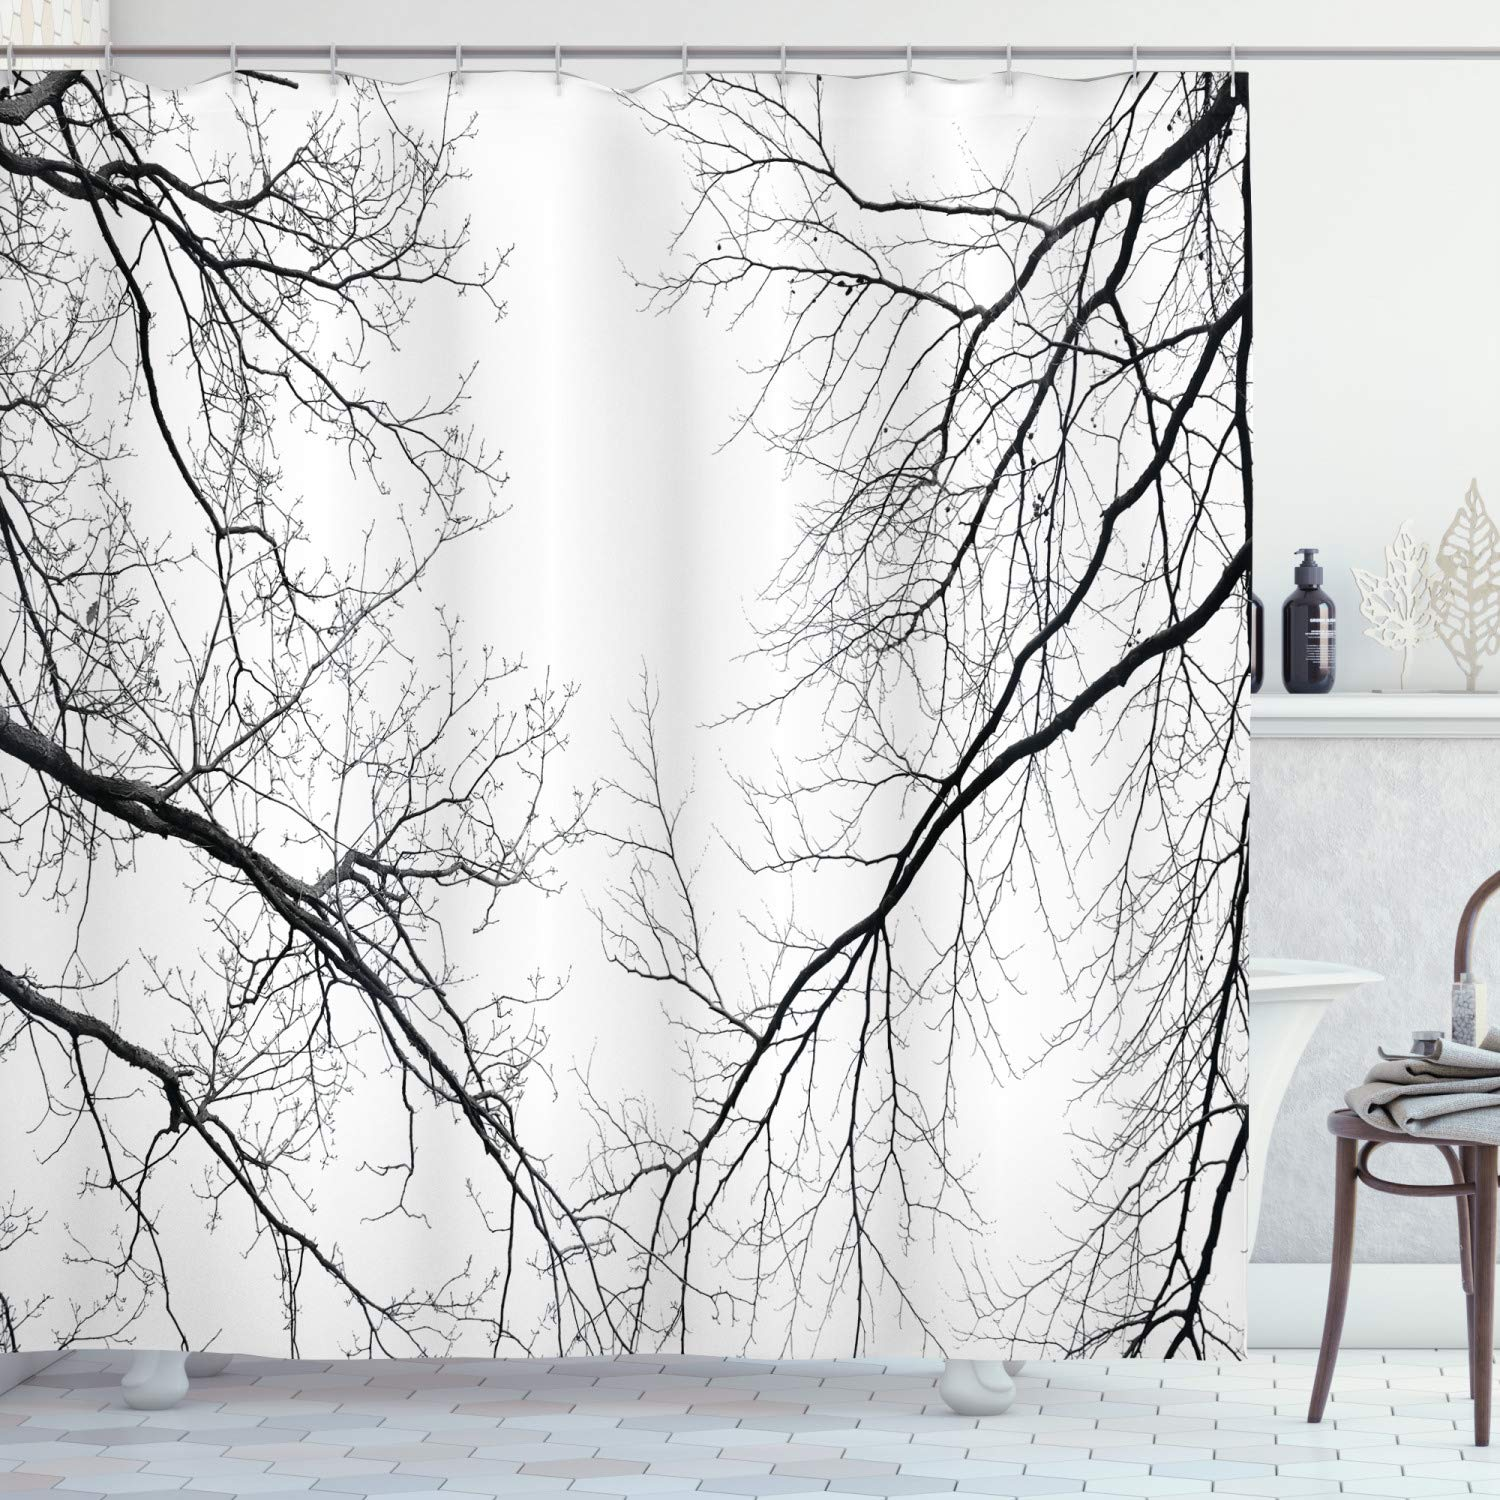 """Ambesonne Forest Shower Curtain, Trees Branches Leafless Spooky Scary Image in a Gloomy Air Sky Scene Image, Cloth Fabric Bathroom Decor Set with Hooks, 75"""" Long, Black White"""